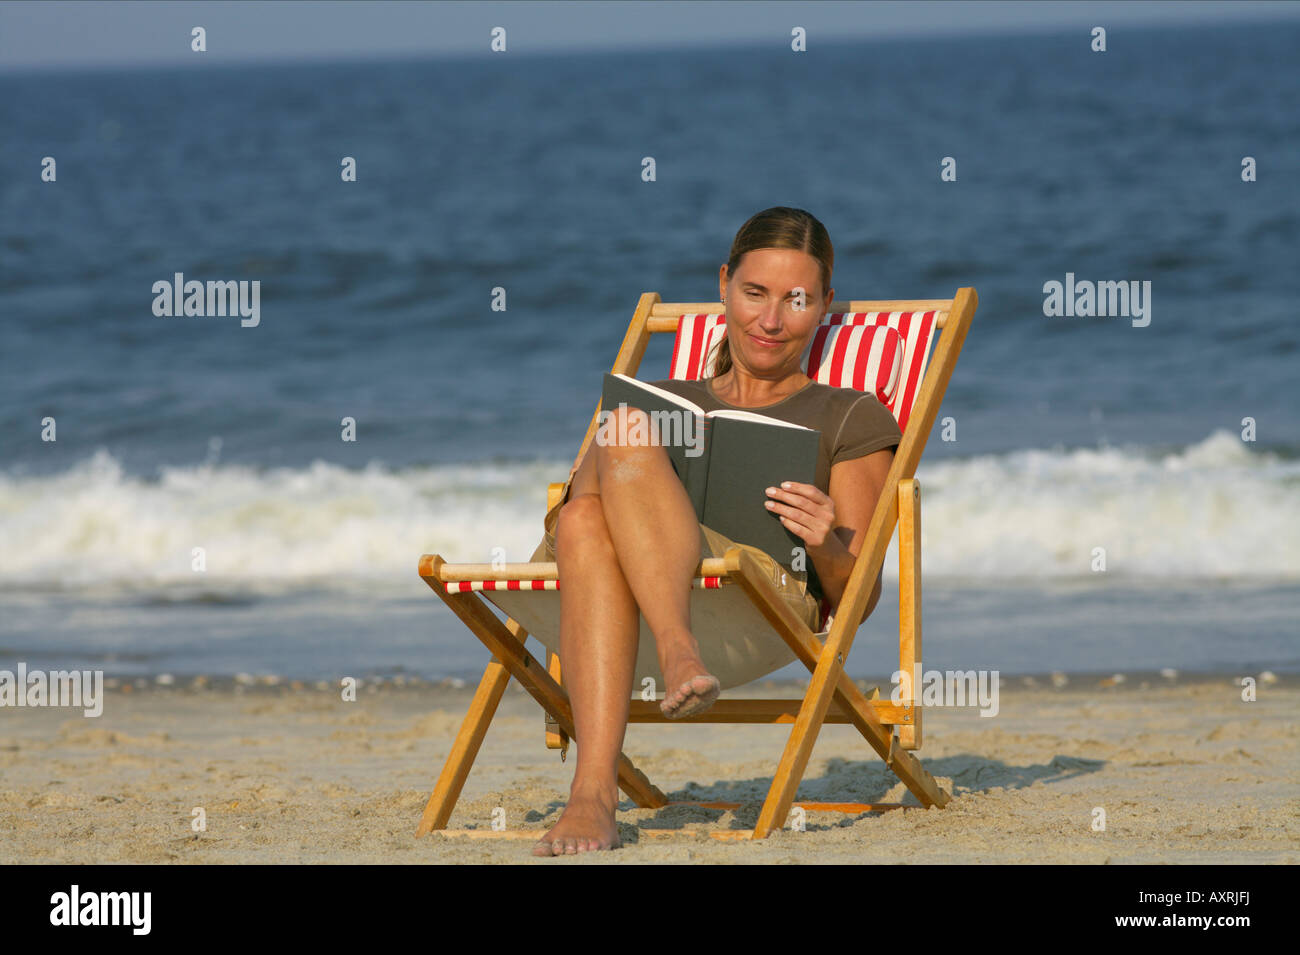 Woman Sitting On A Beach Chair While Reading Stock Photo Alamy